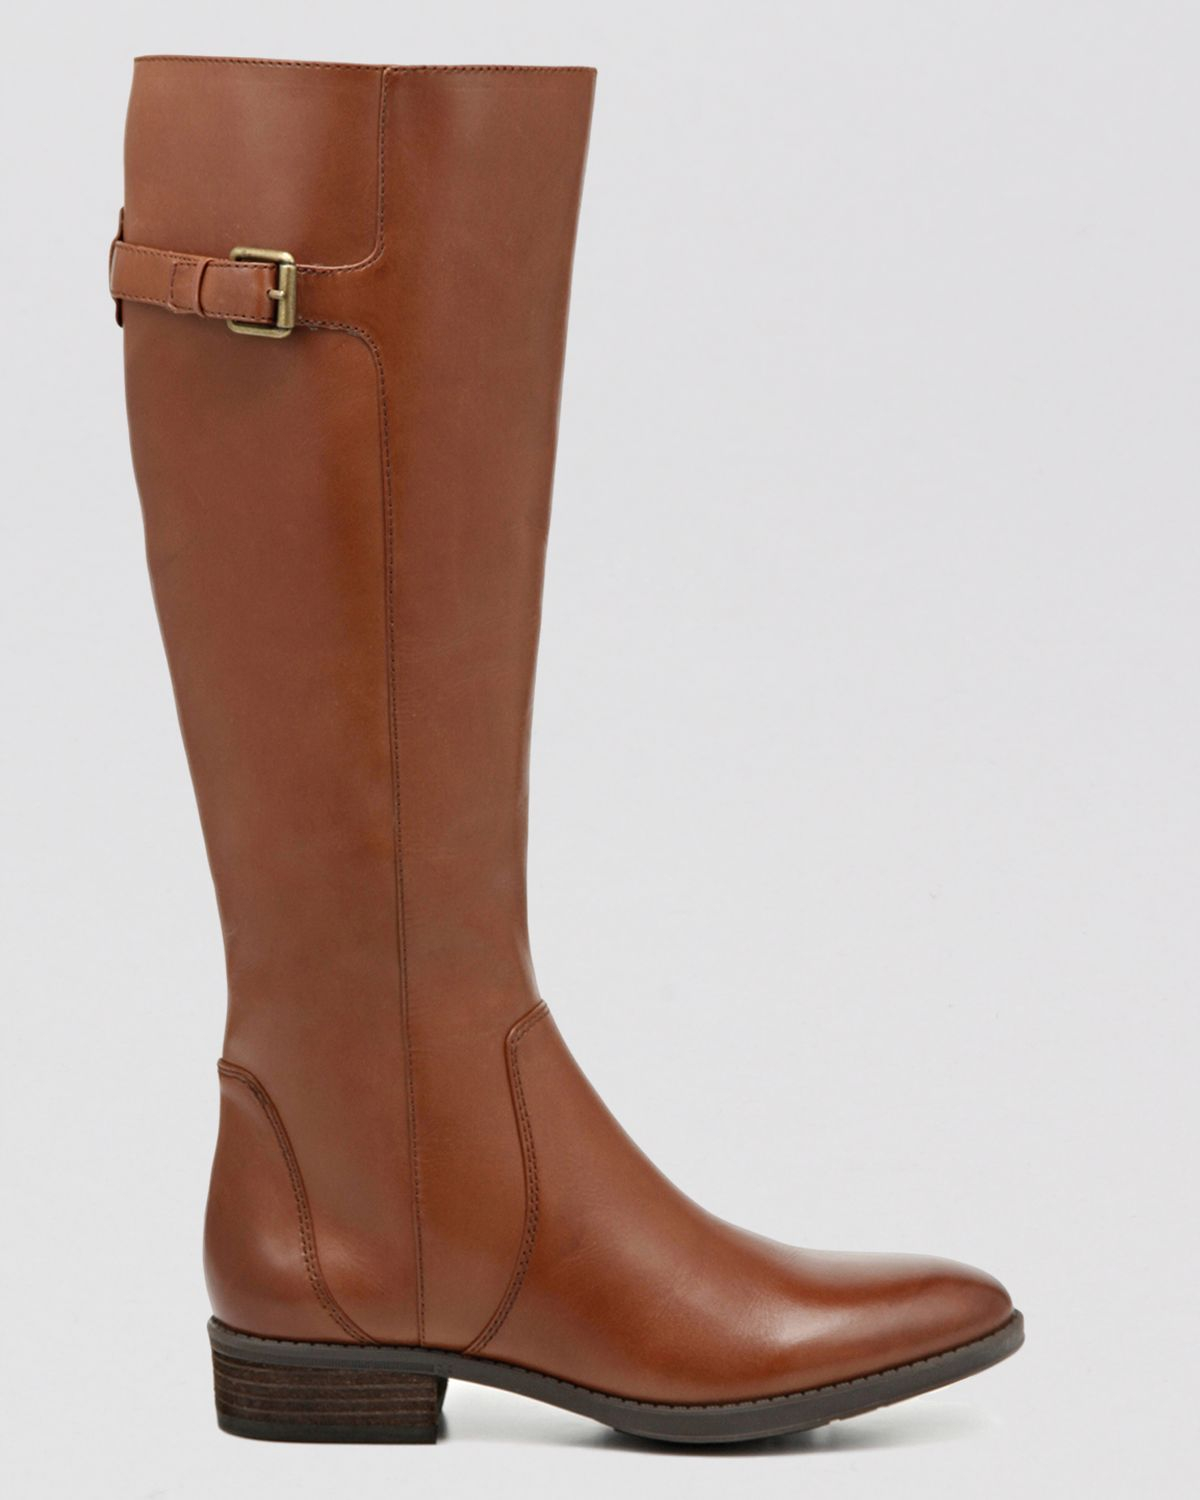 Sam Edelman Tall Riding Boots